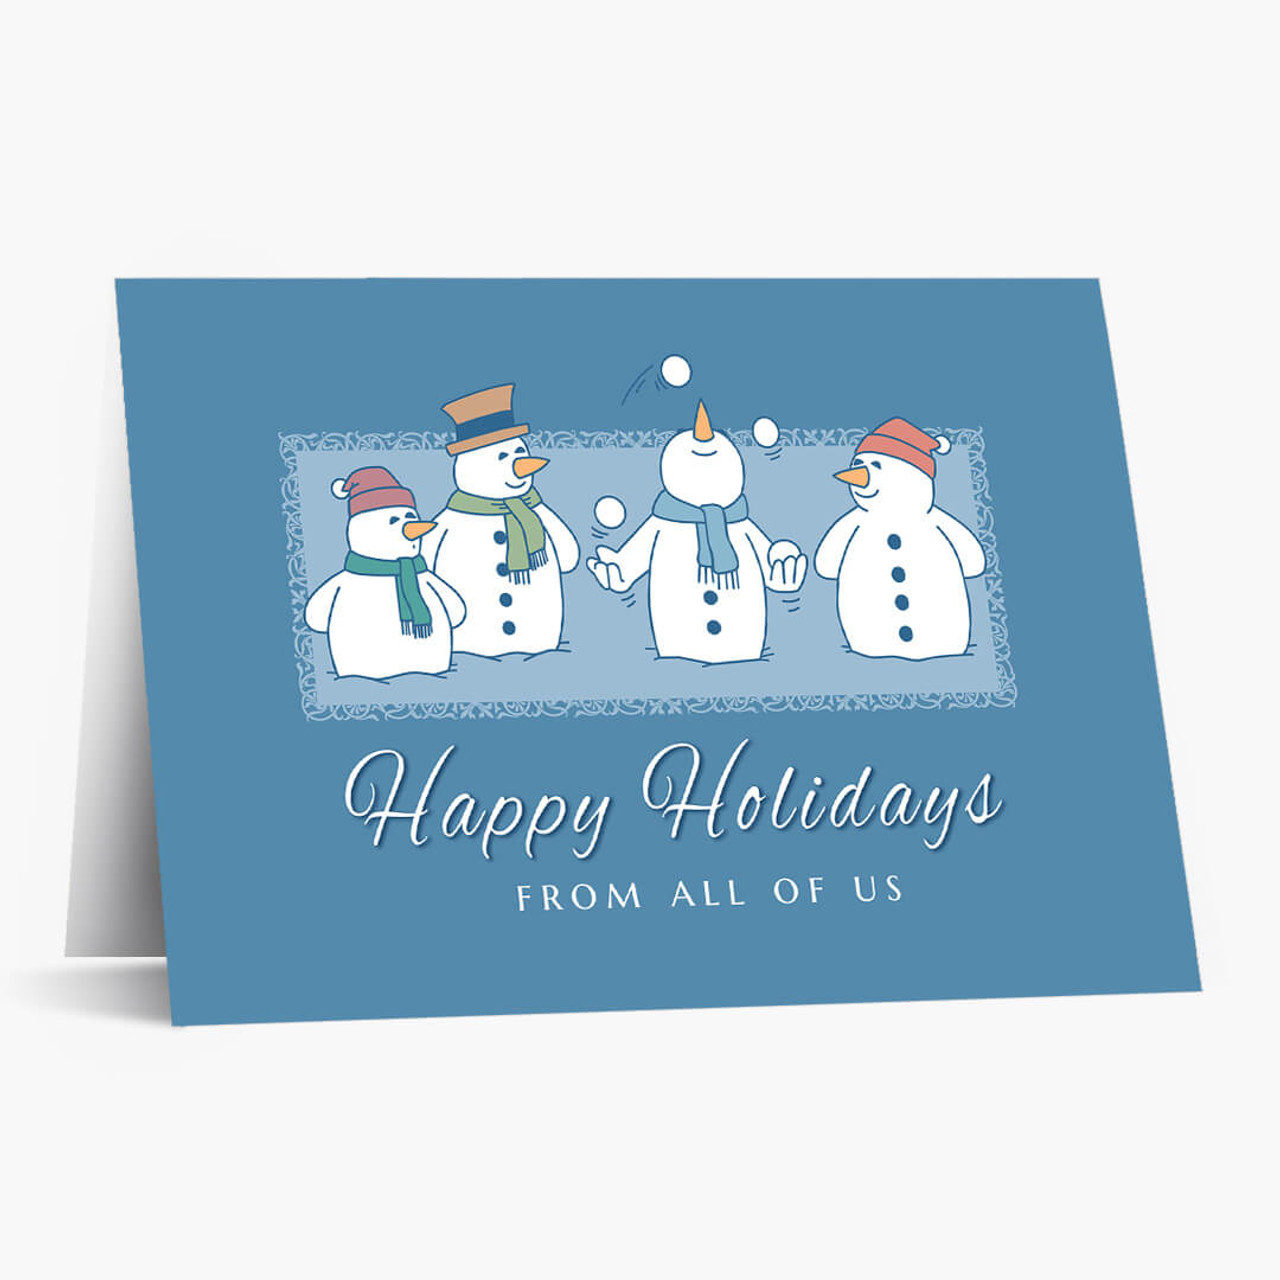 Juggling Snowman Christmas Card